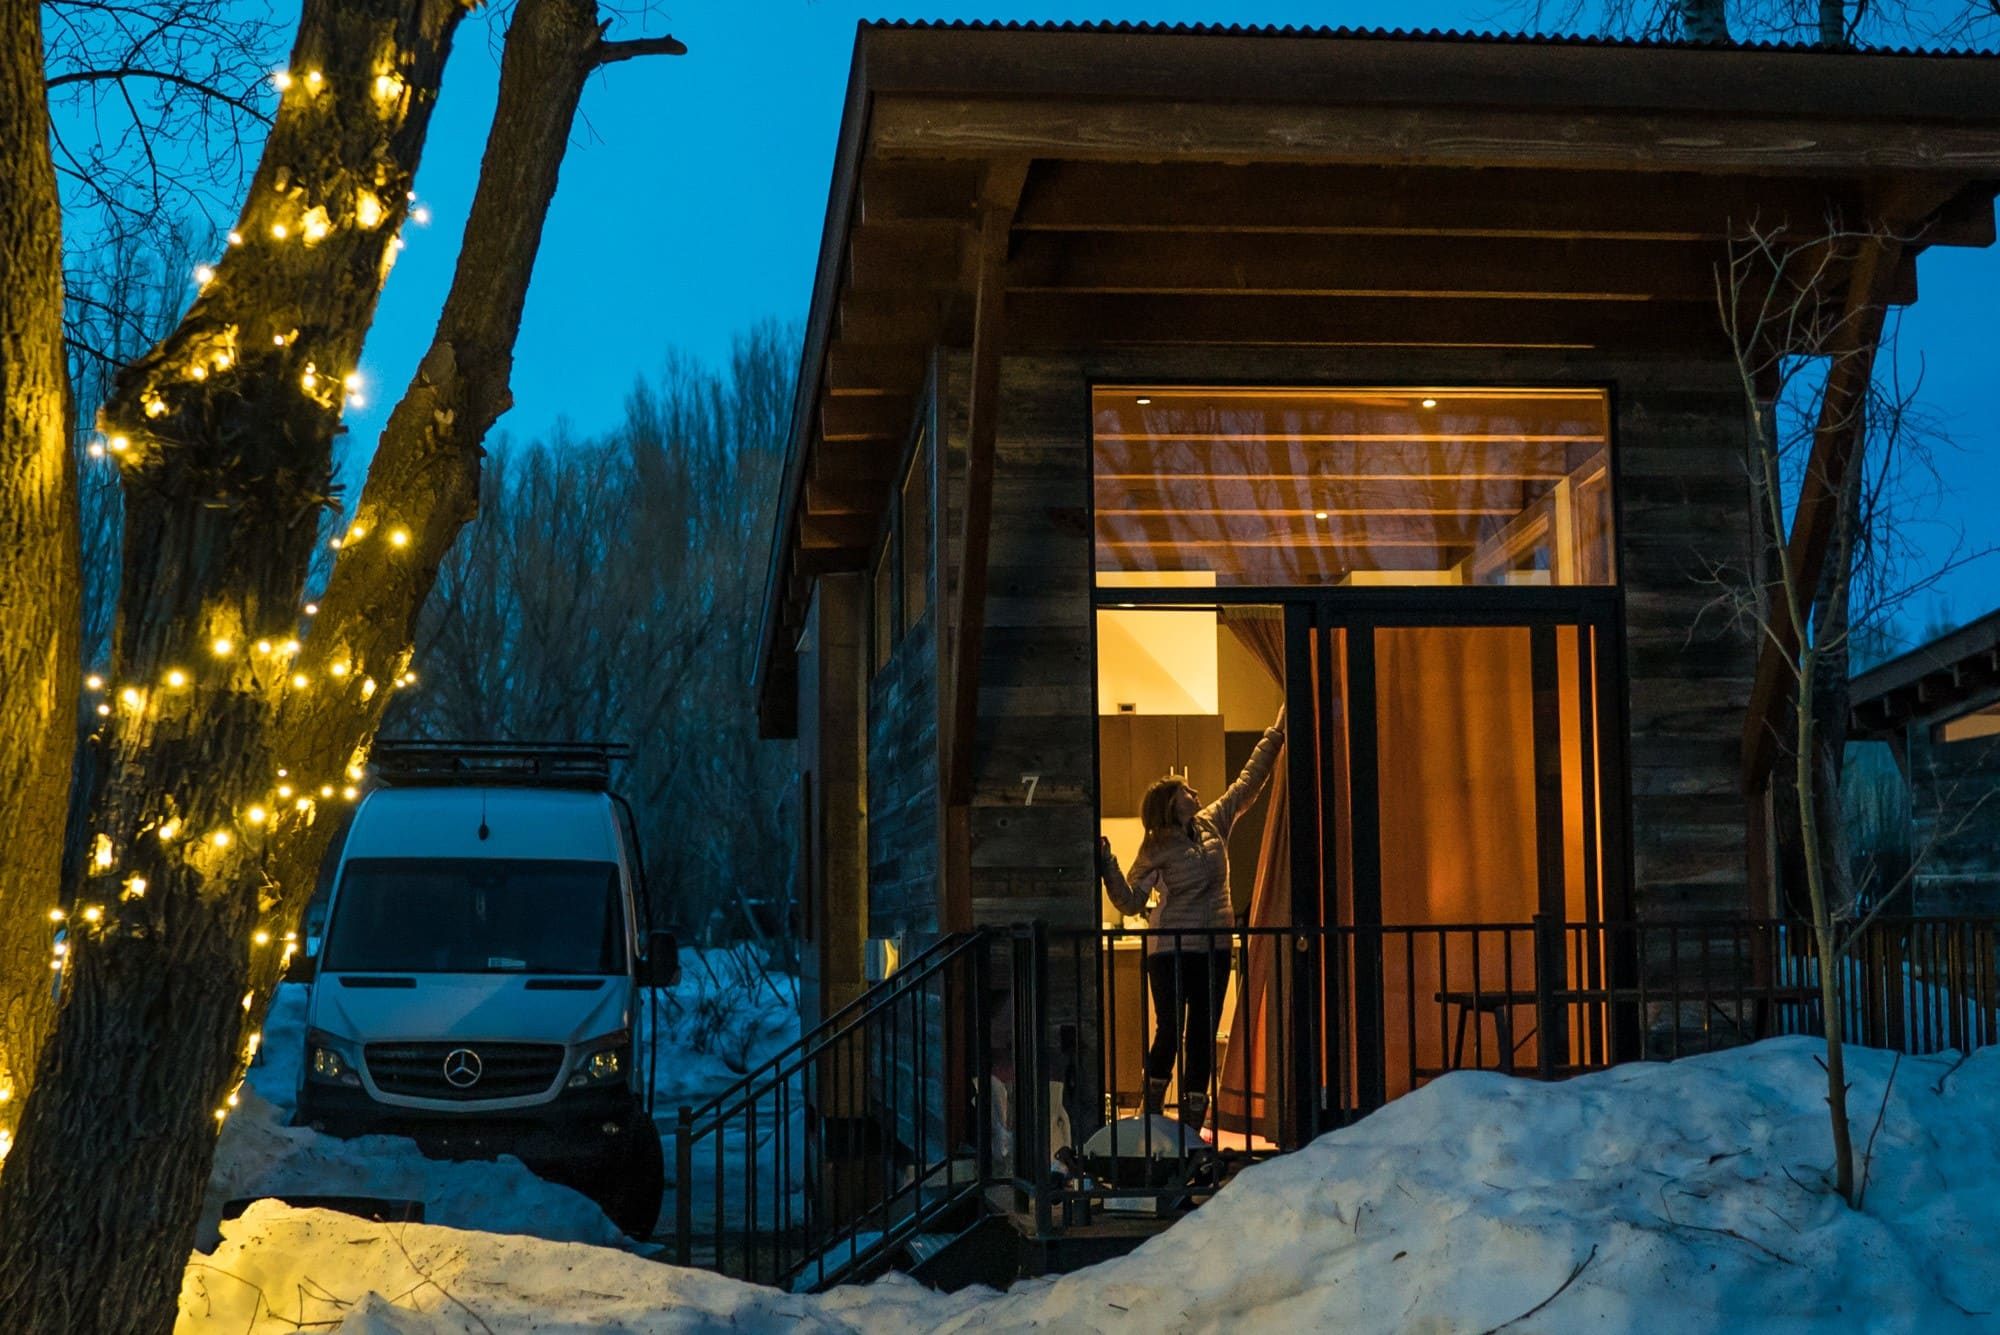 Hotel Review: Fireside Resort Tiny House Cabins in Jackson, Wyoming